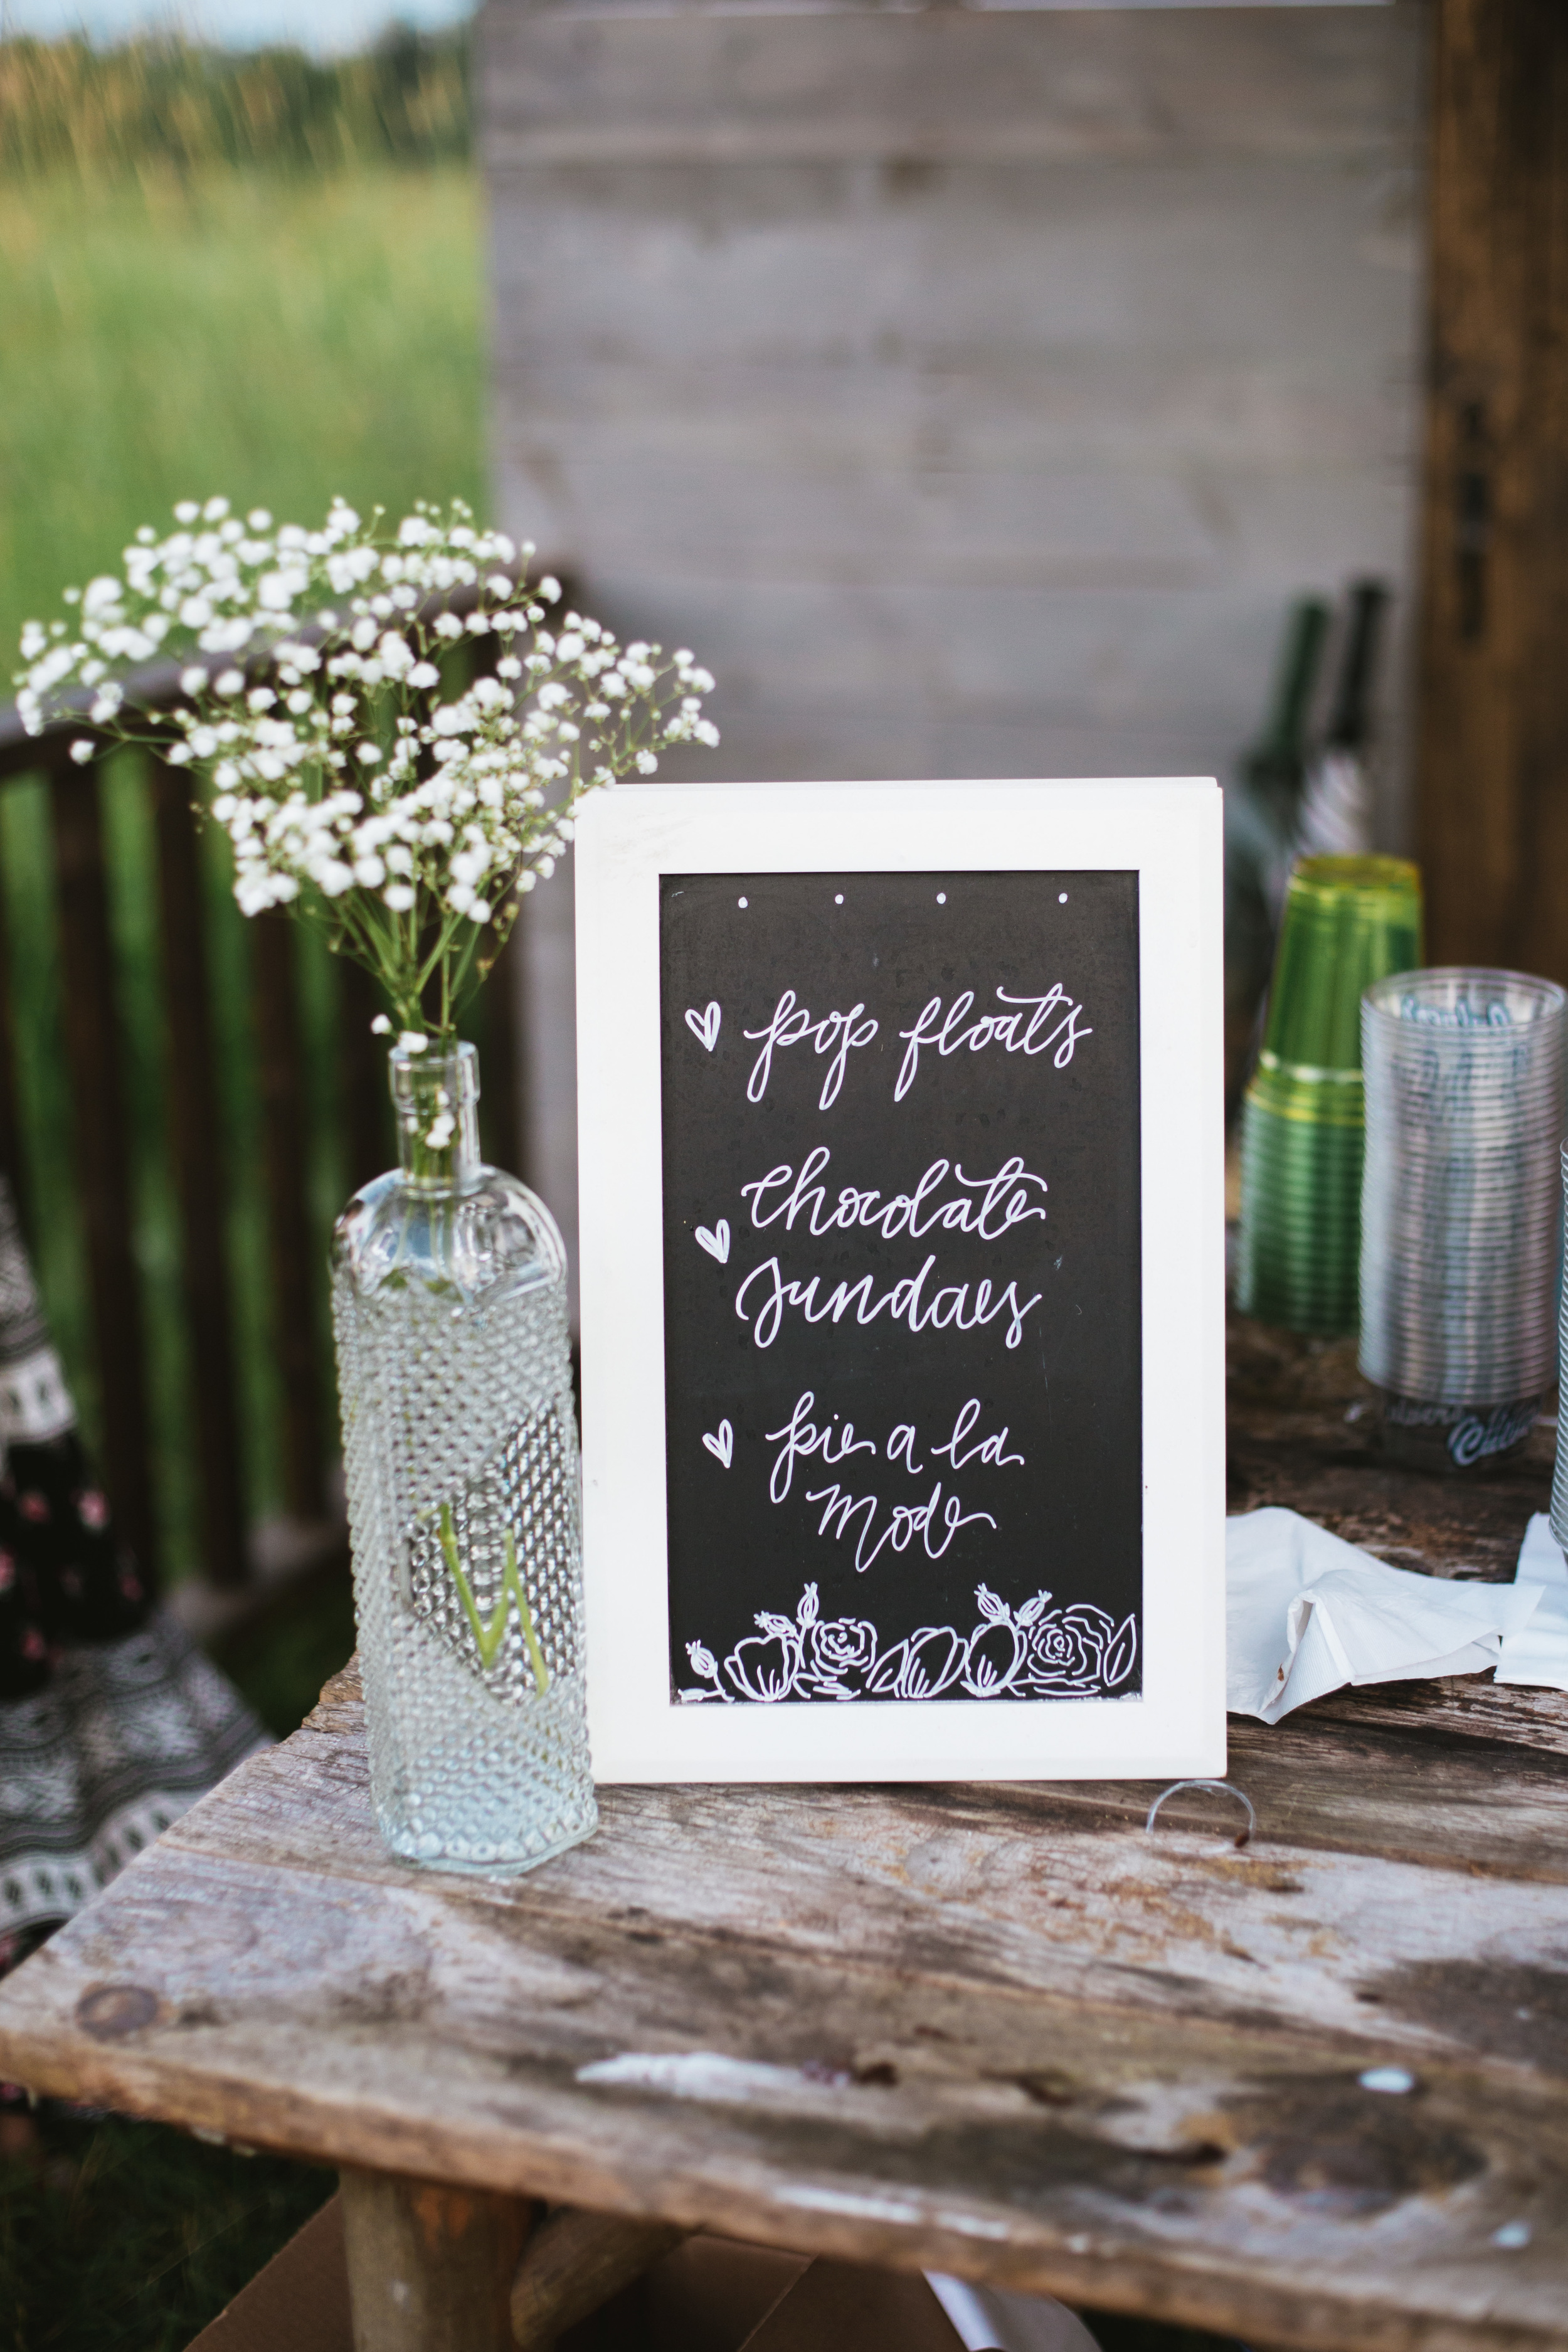 the-bees-knees-floral-sharayah-krautkremer-brainerd-mn-minnesota-wedding-florist-bride-flowers-lovely-day-fleur-lettering-minnesota